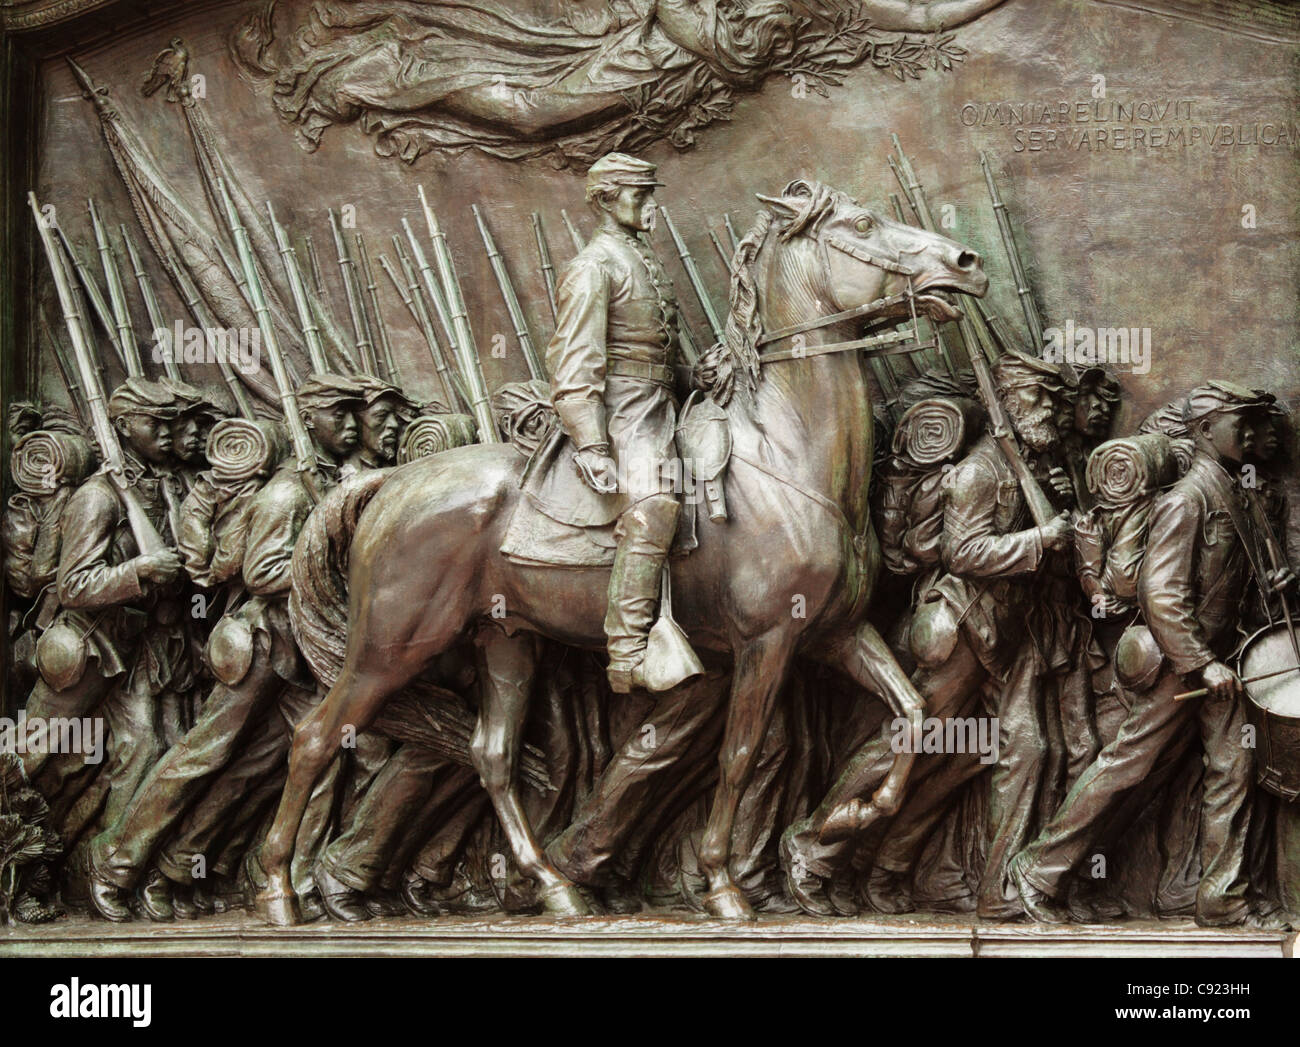 The Robert Gould Shaw Memorial is a bronze relief sculpture honoring Robert Gould Shaw and the 54th Massachusetts - Stock Image